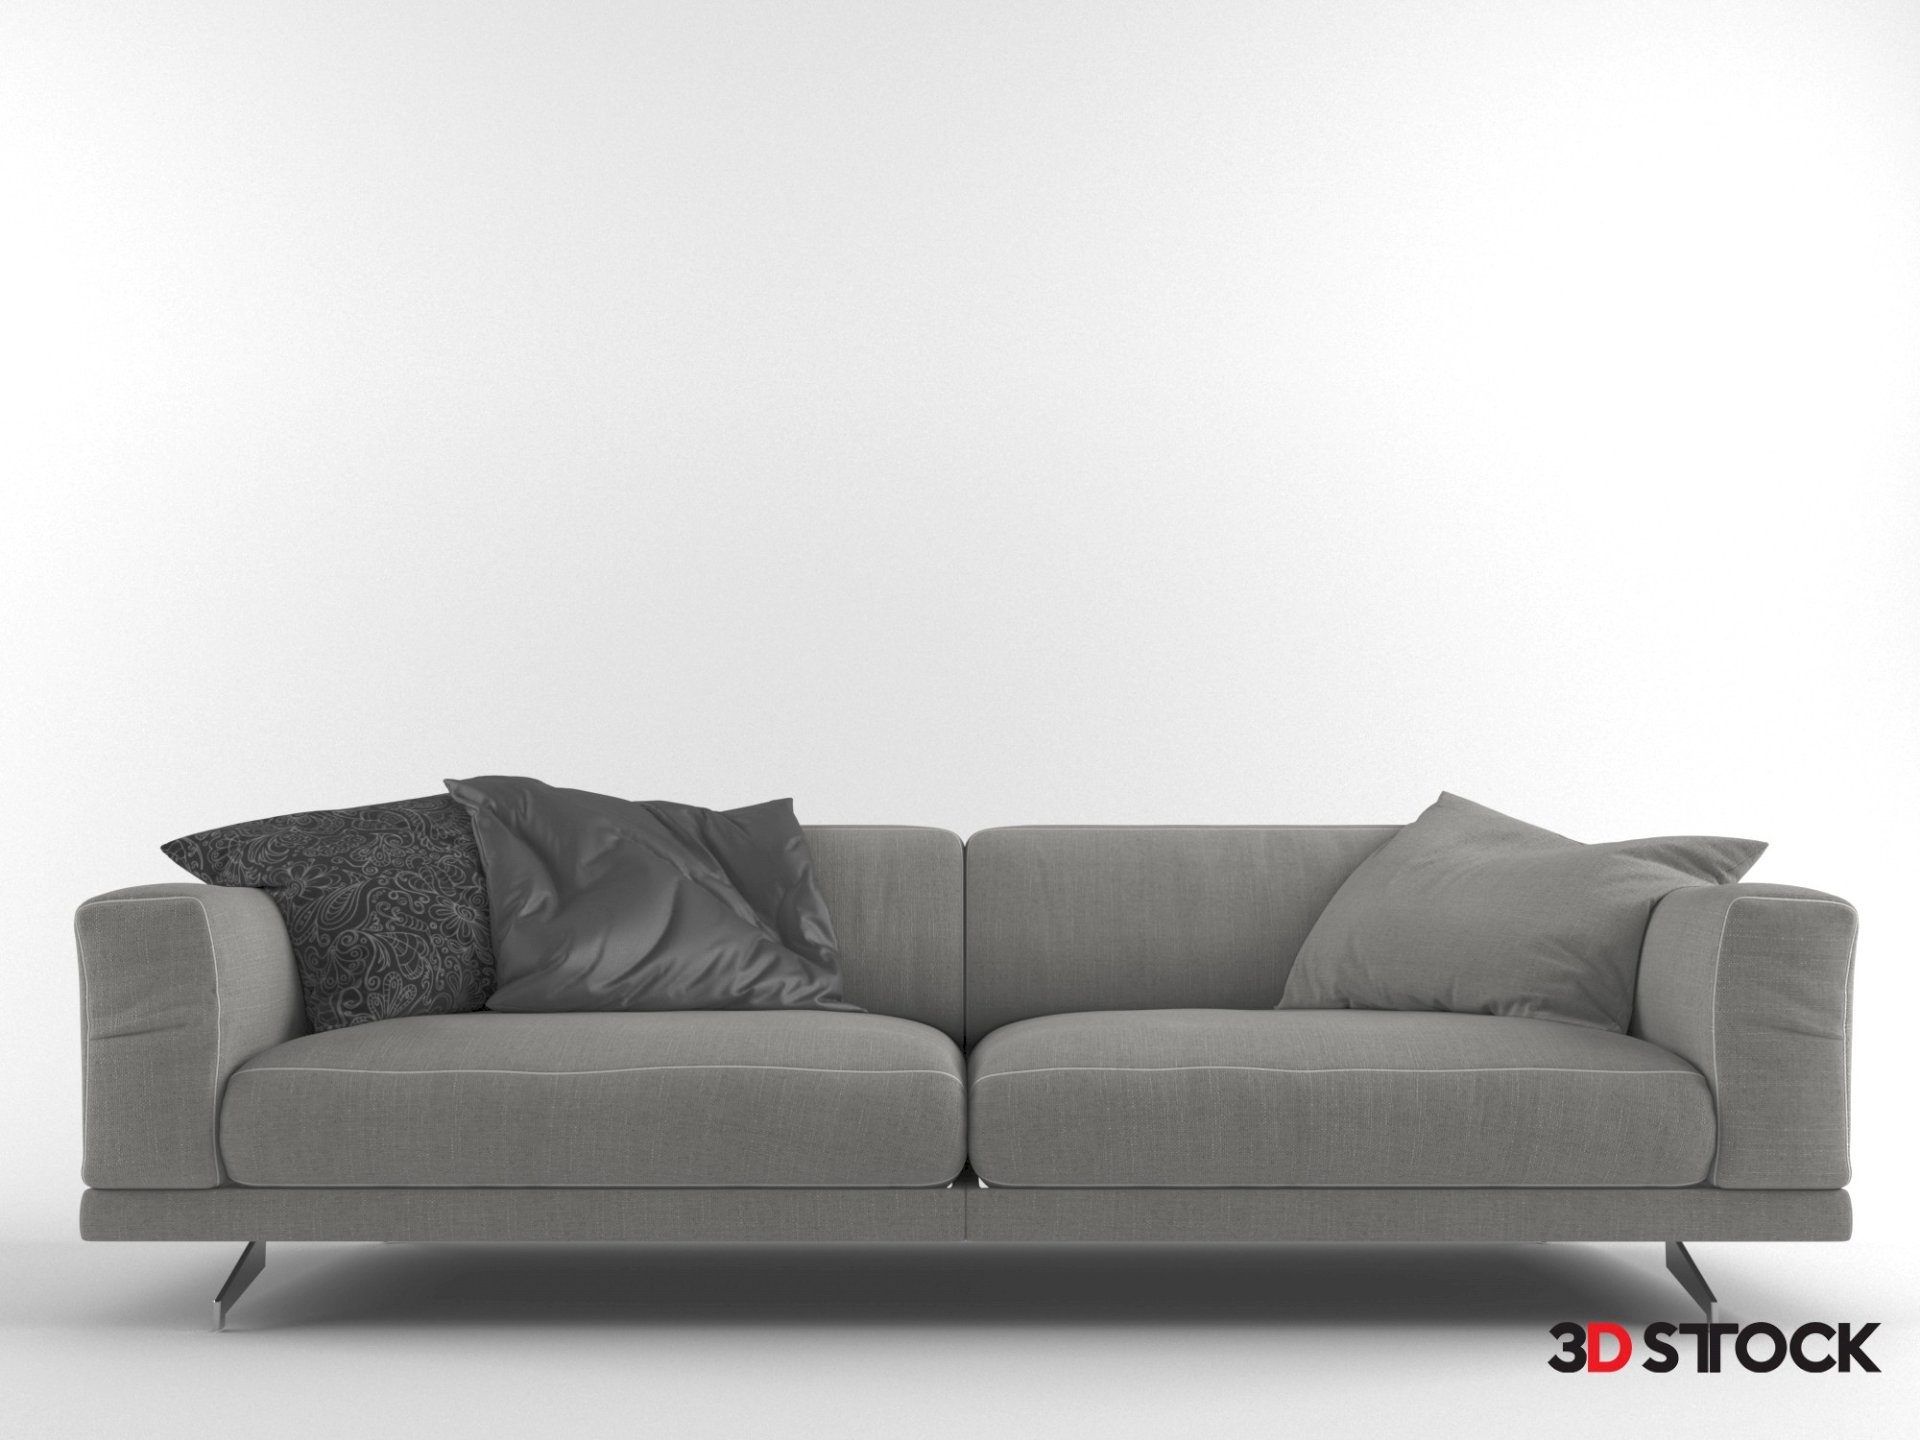 Aston Martin Sofa 3d Stock 3d Models For Professionals